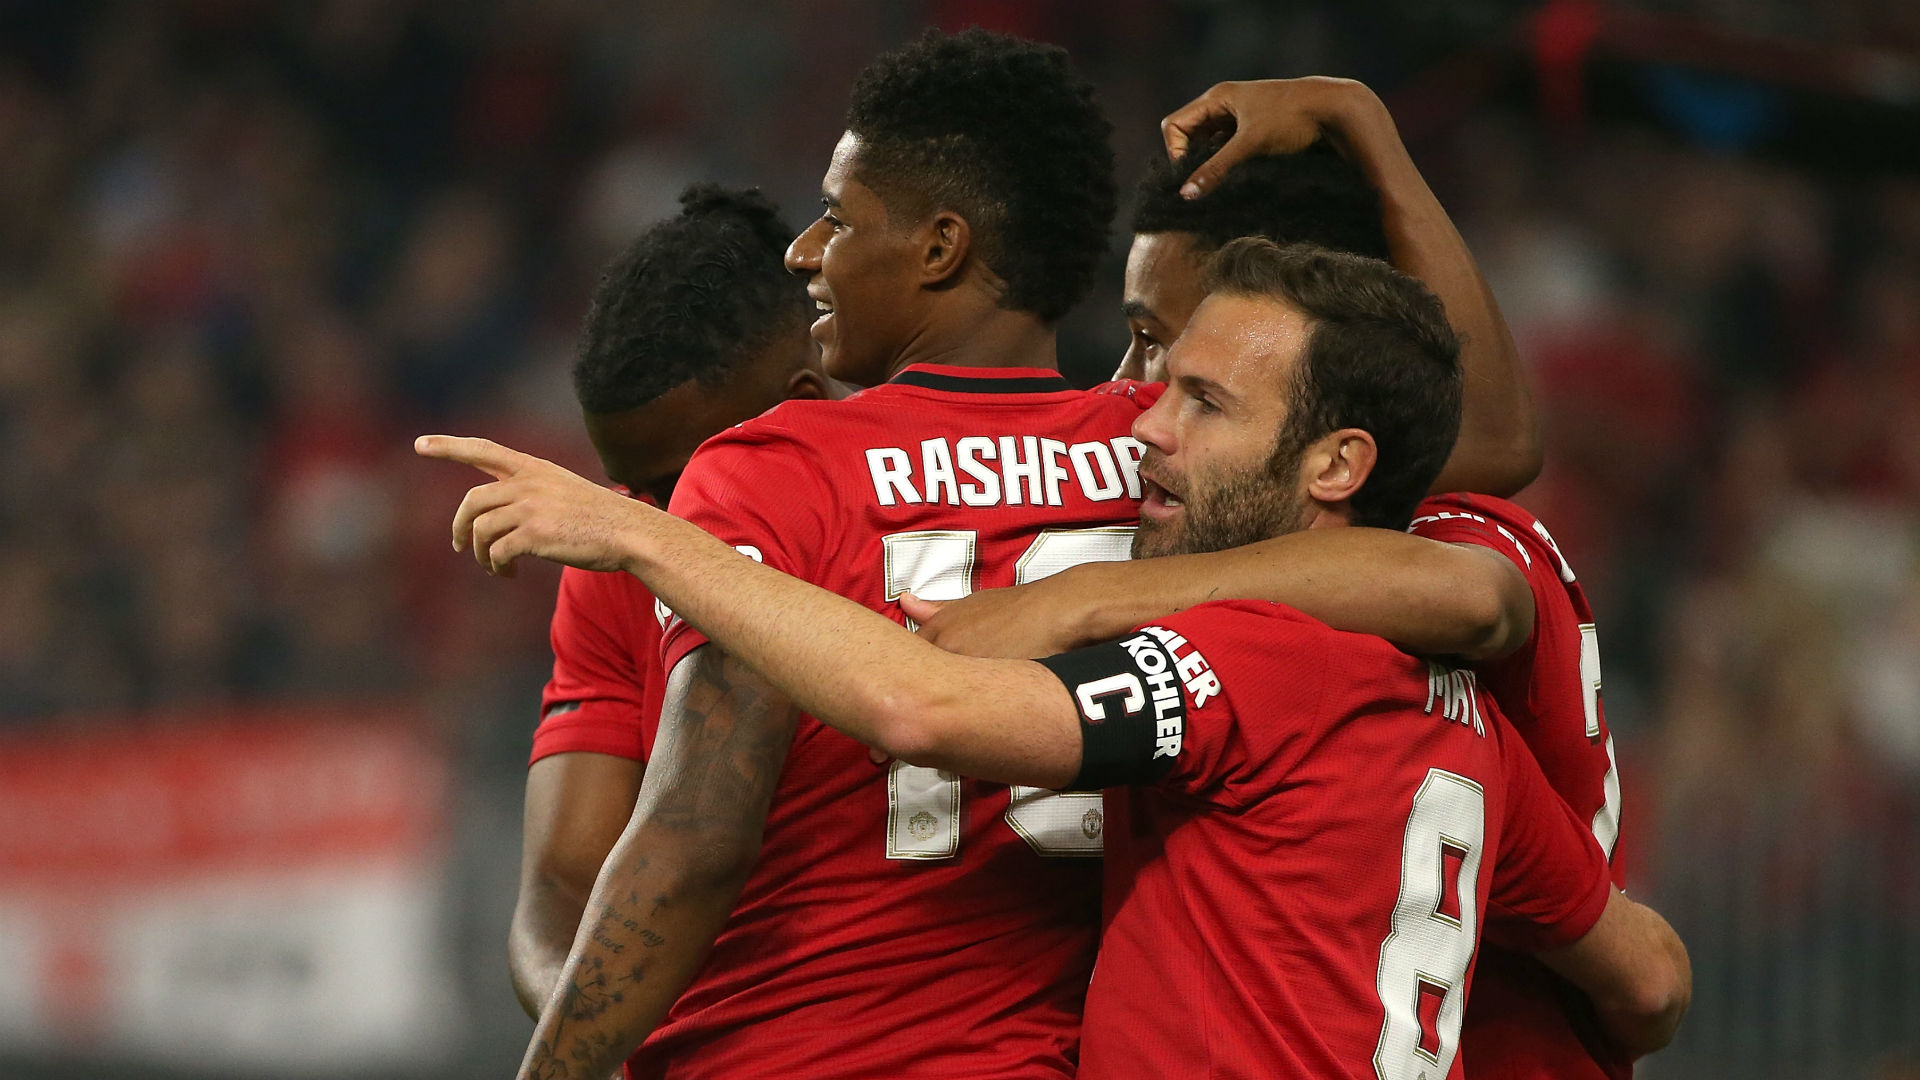 'We want to win big trophies again' – Mata expecting improvement at Man Utd